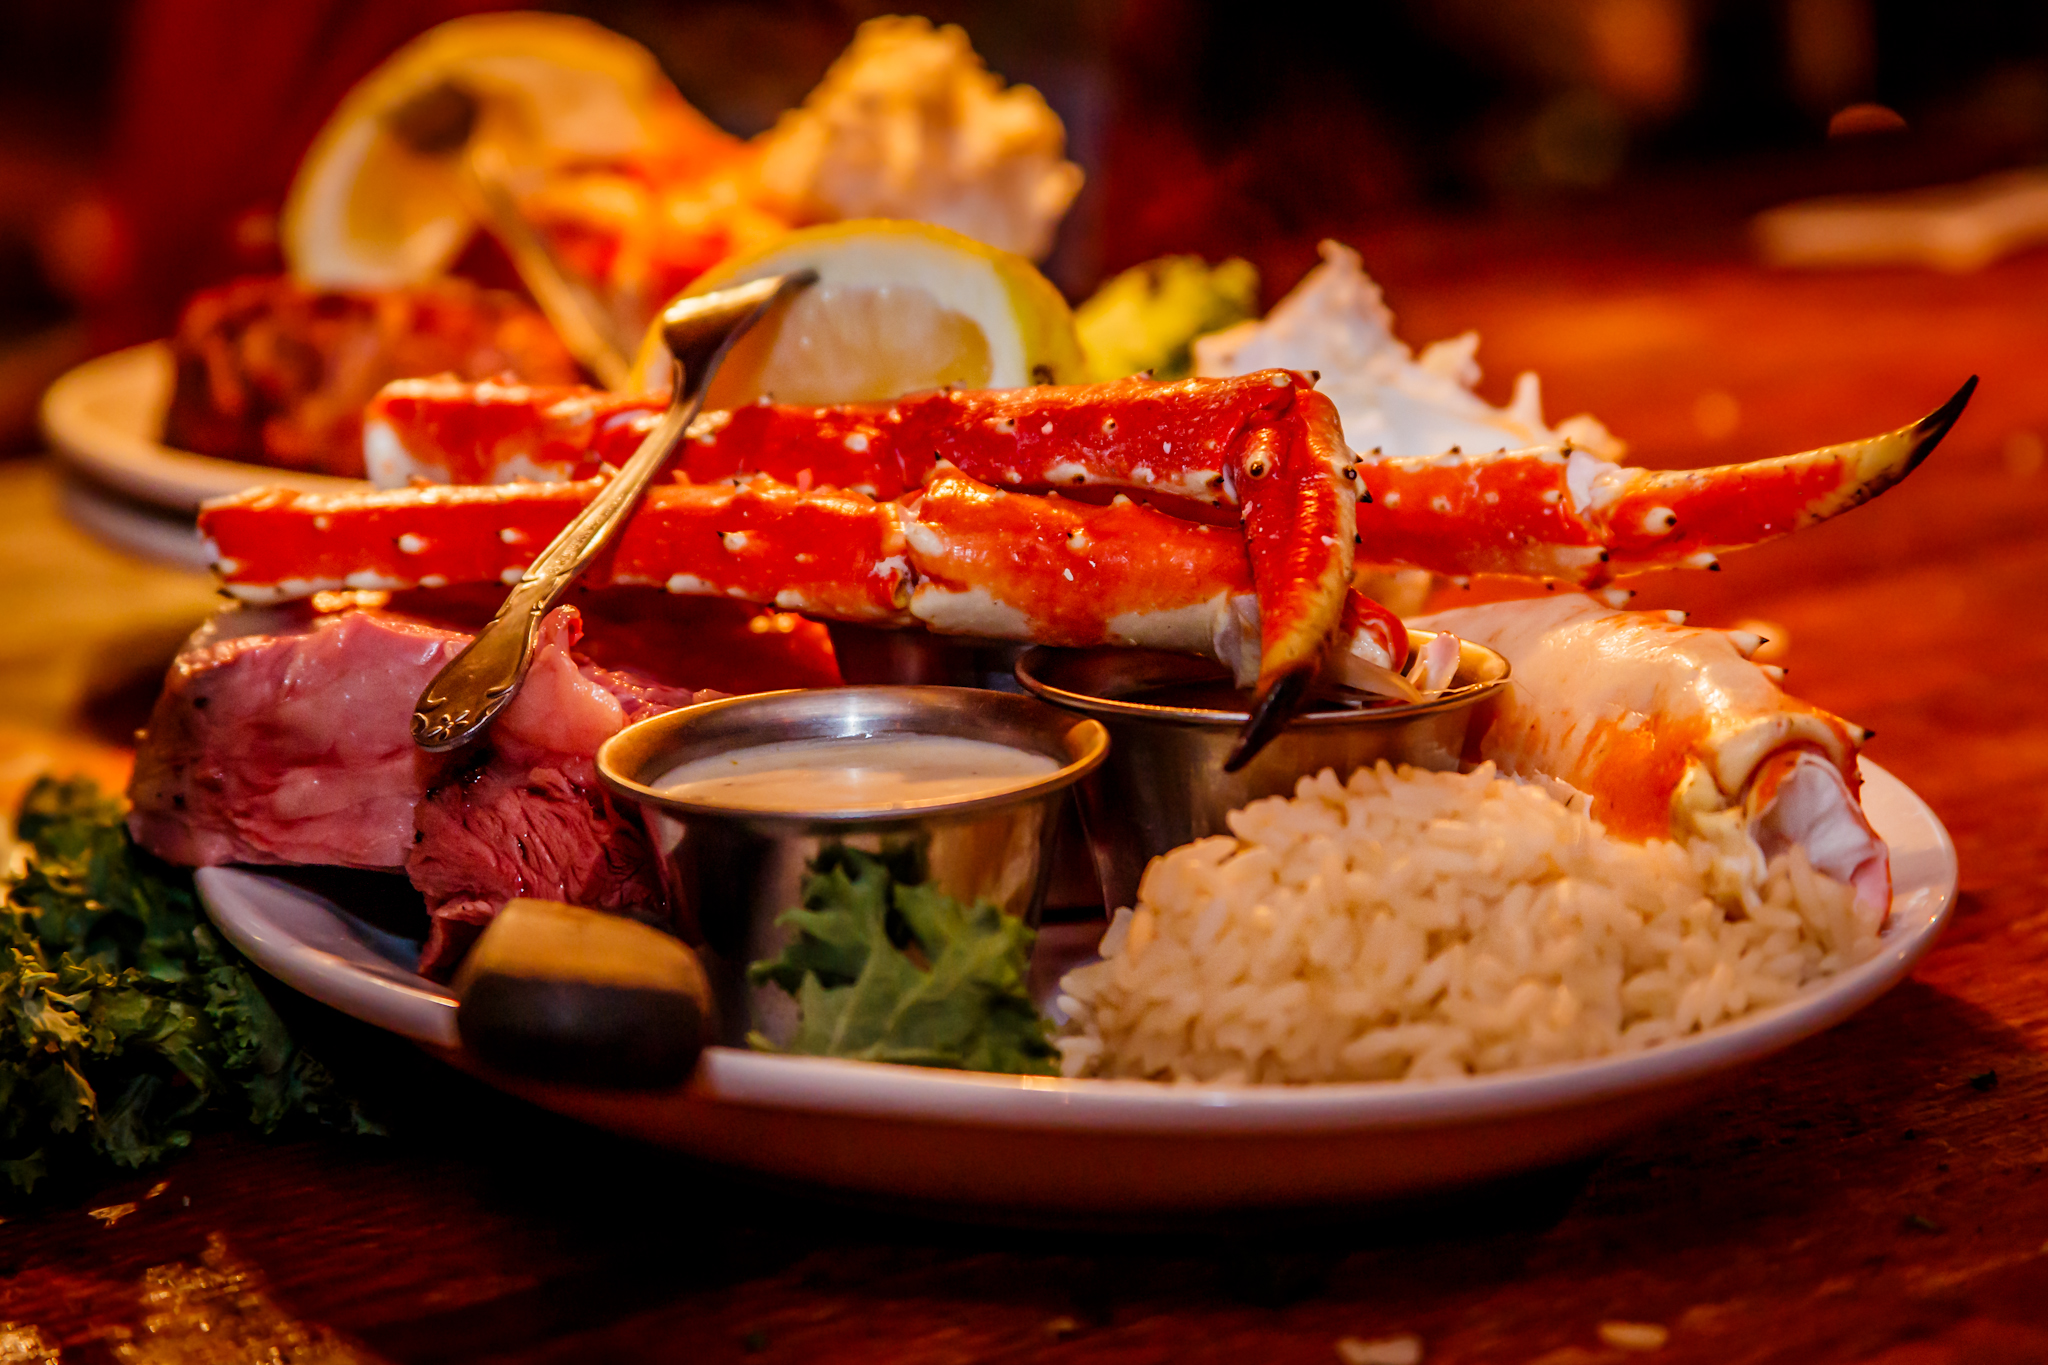 plate with steak and crab claws and sauce and rice